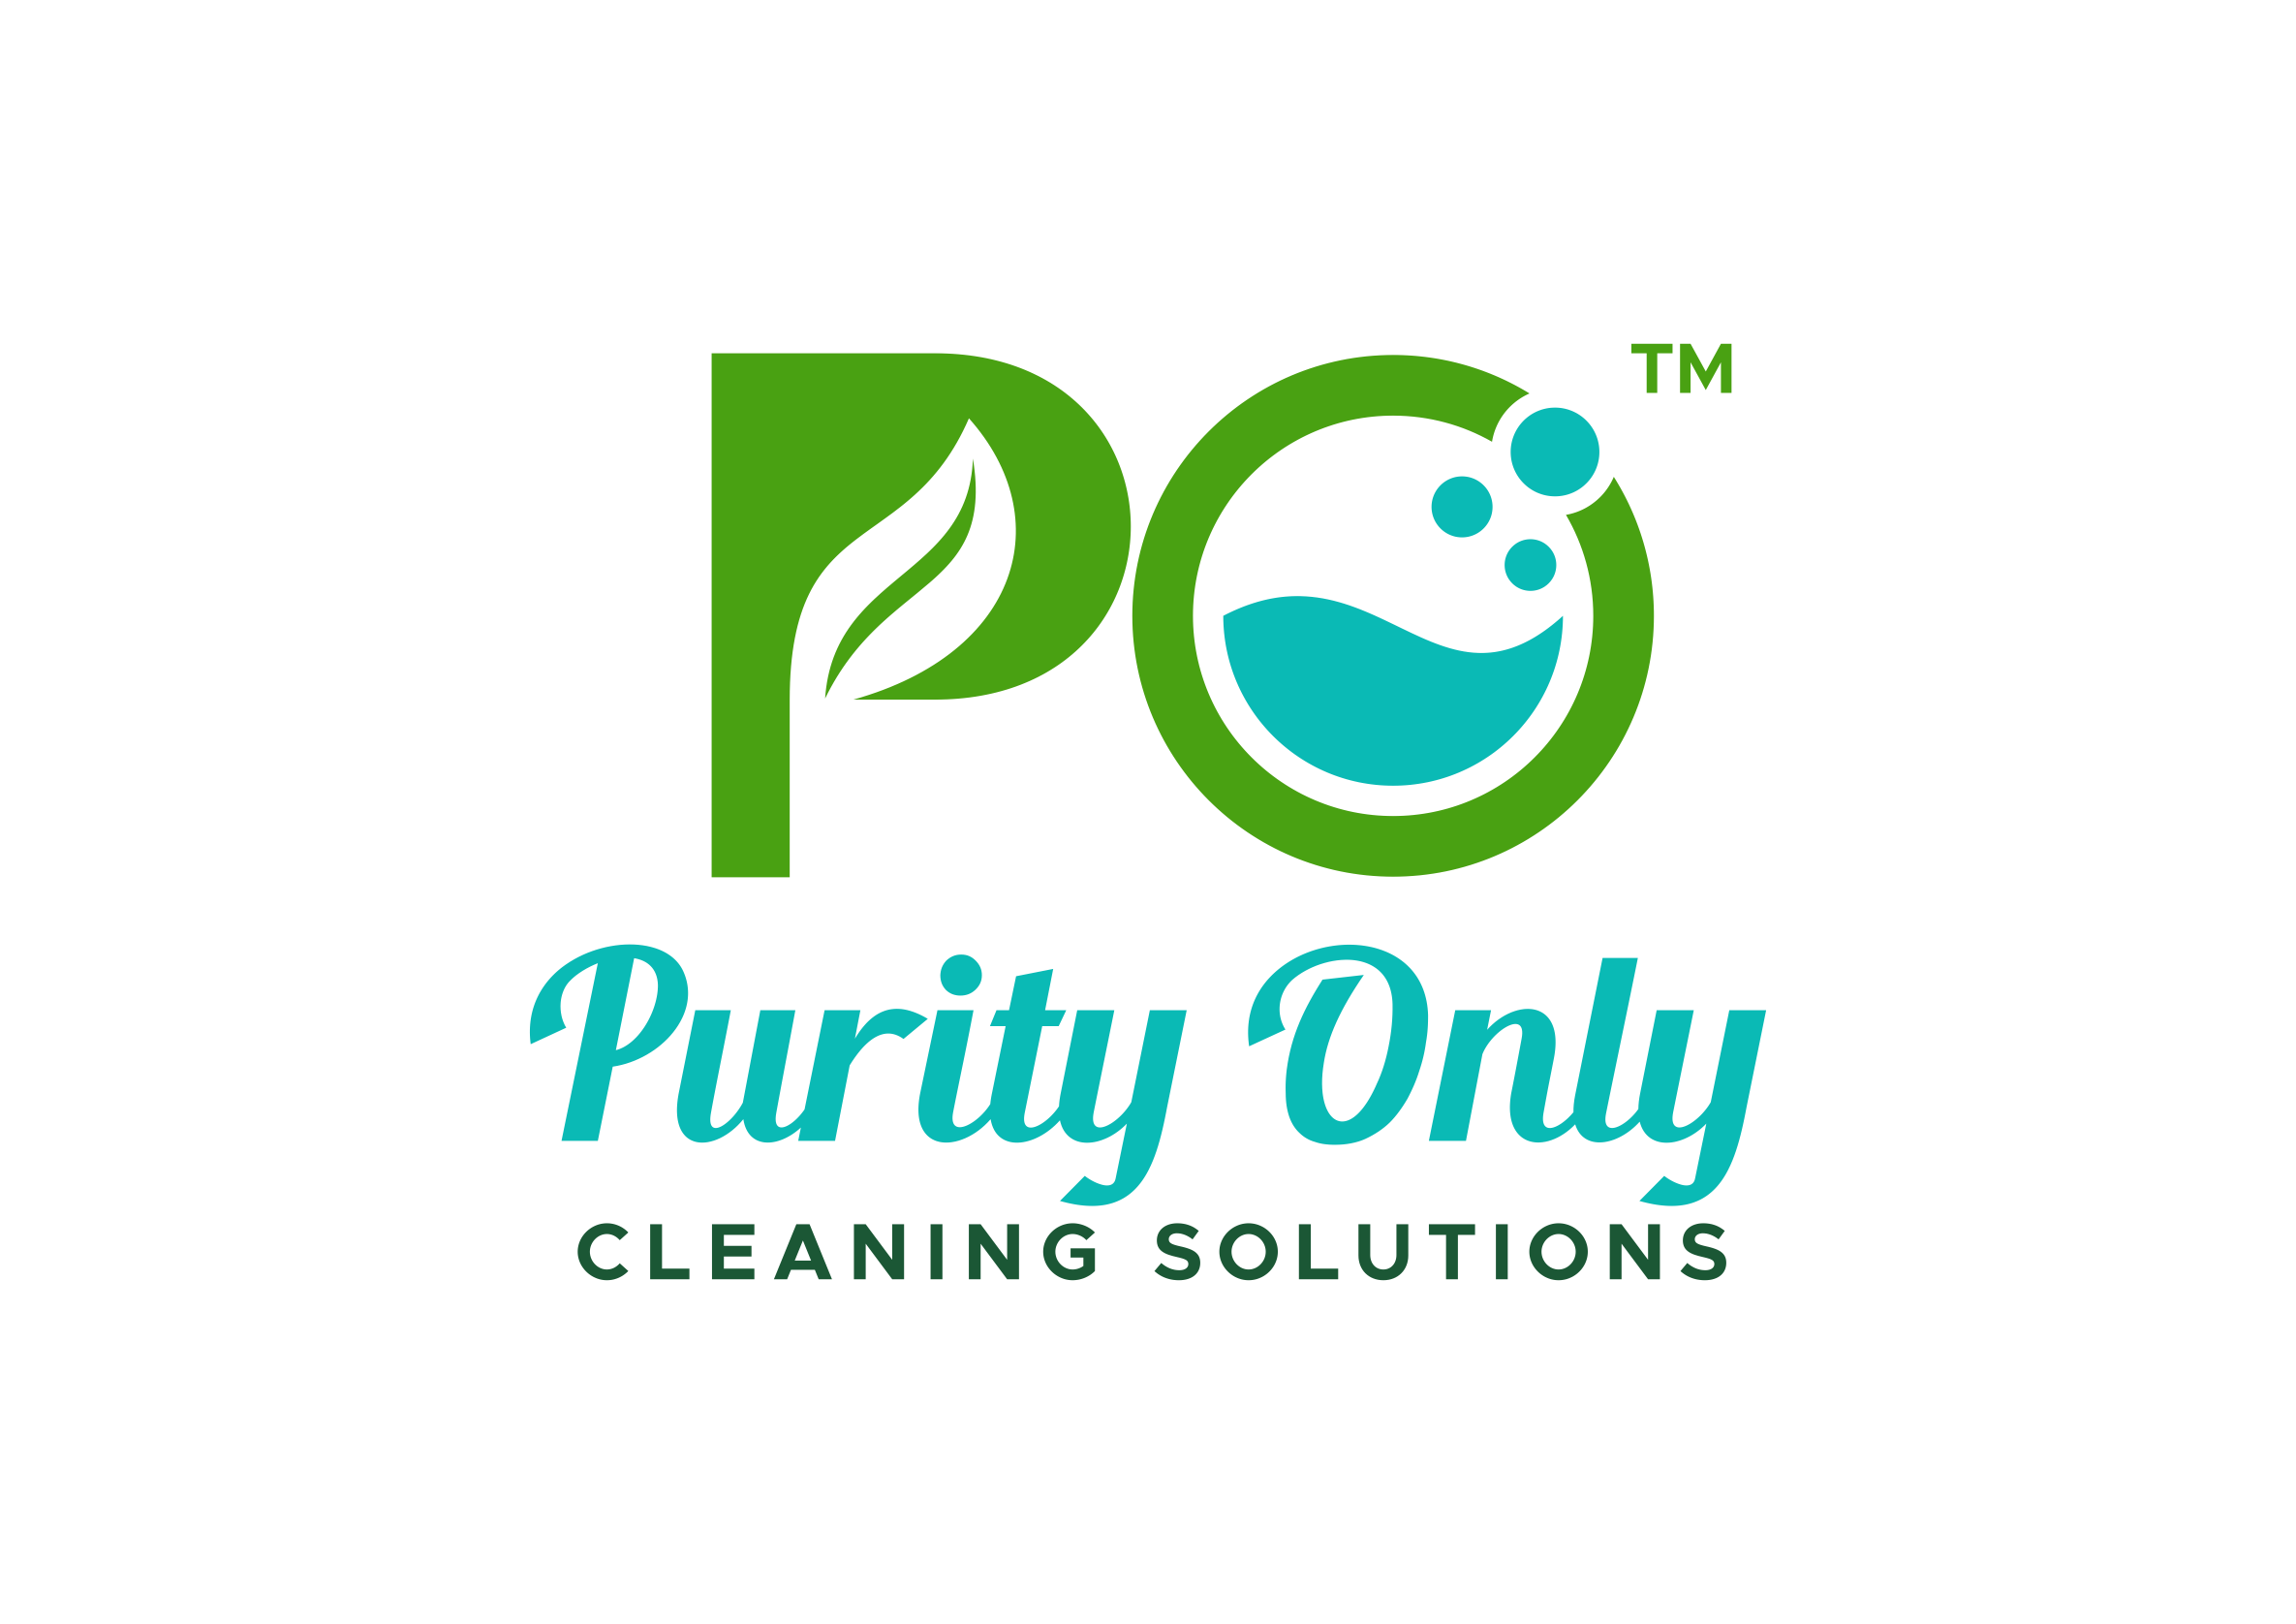 LOGO for All Natural Cleaning Products